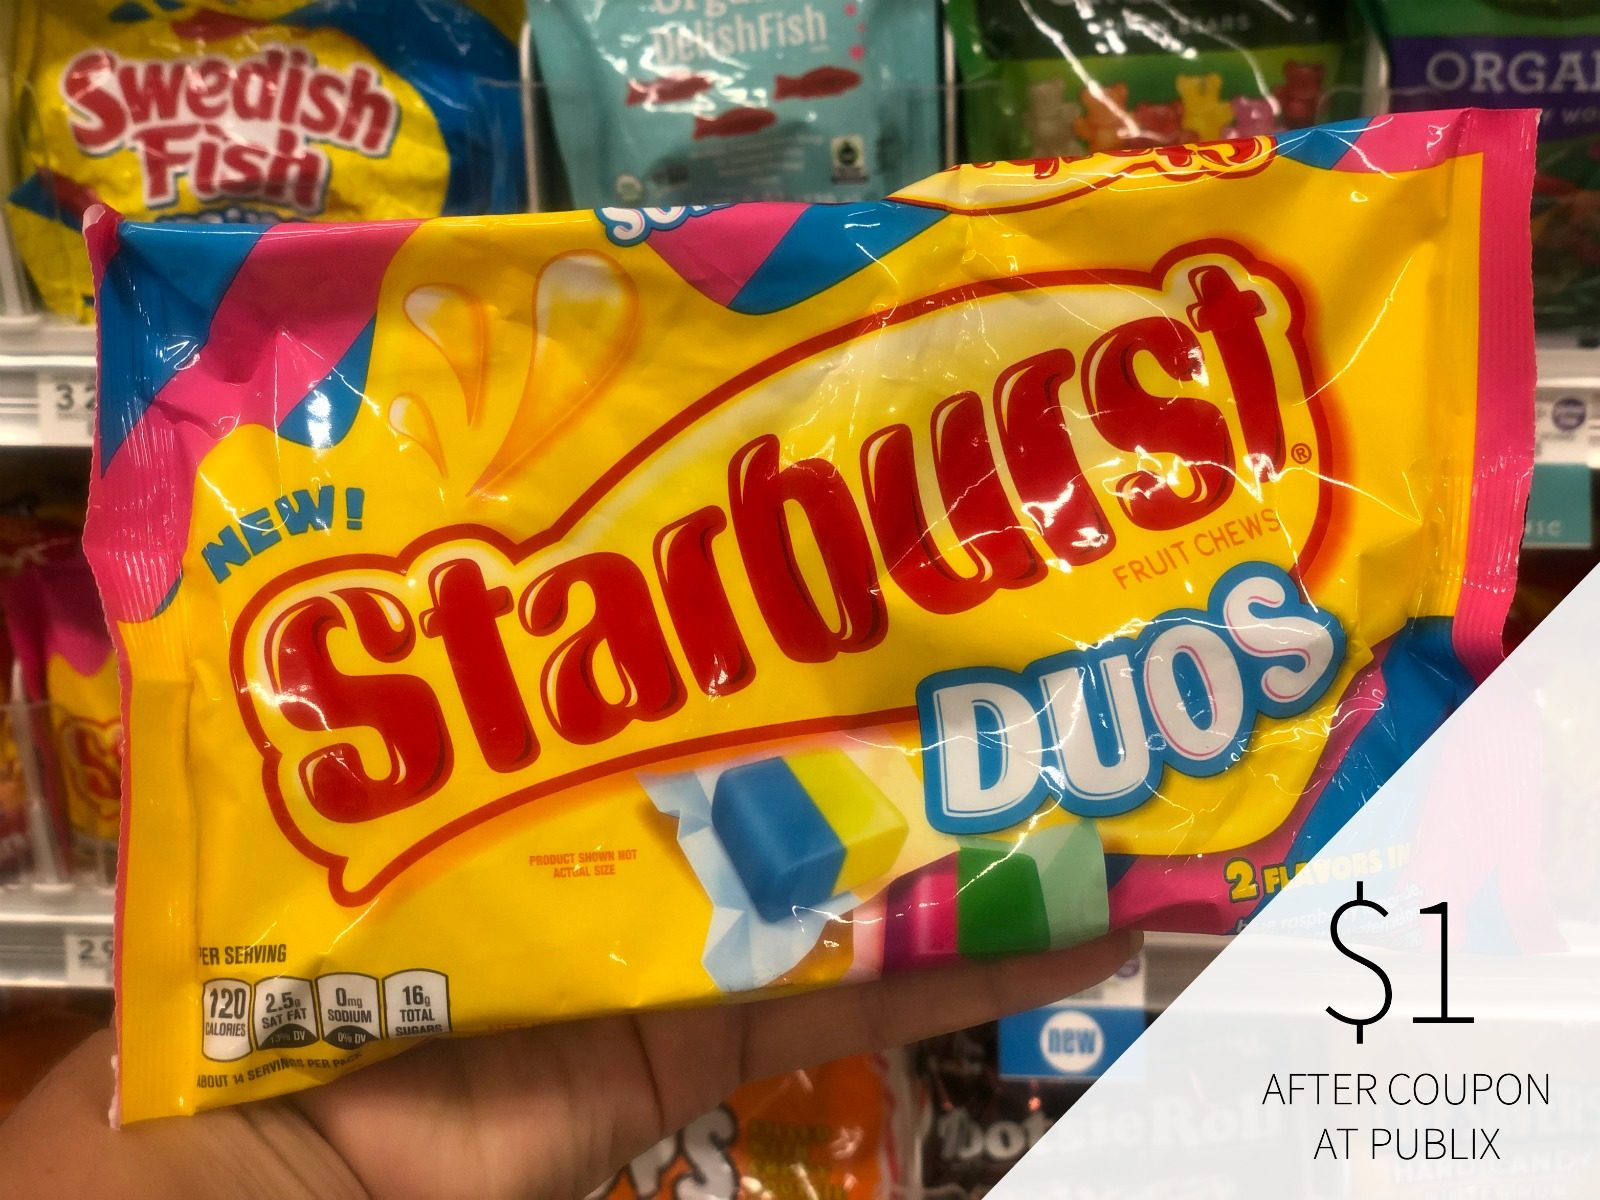 New Starburst Duo Coupon To Print - Save At Publix on I Heart Publix 1